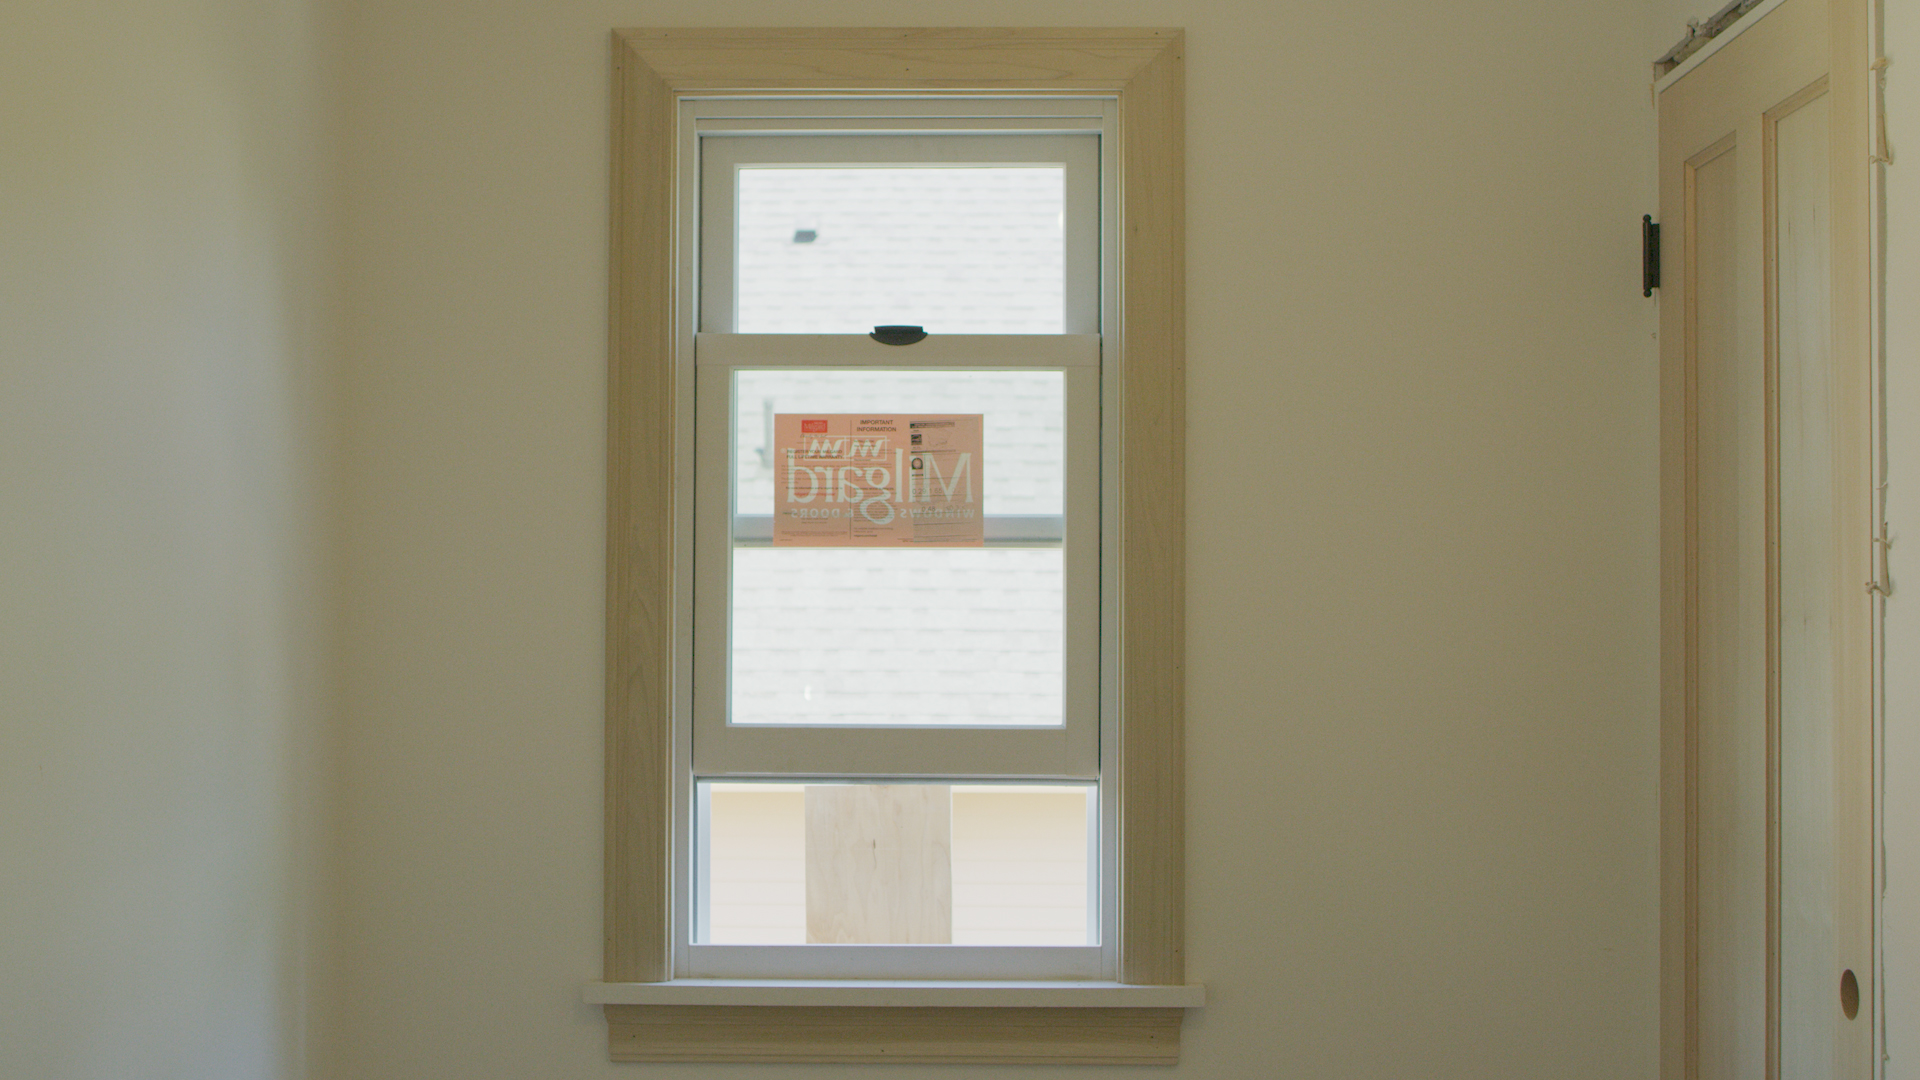 how to relocate a window in an existing wall